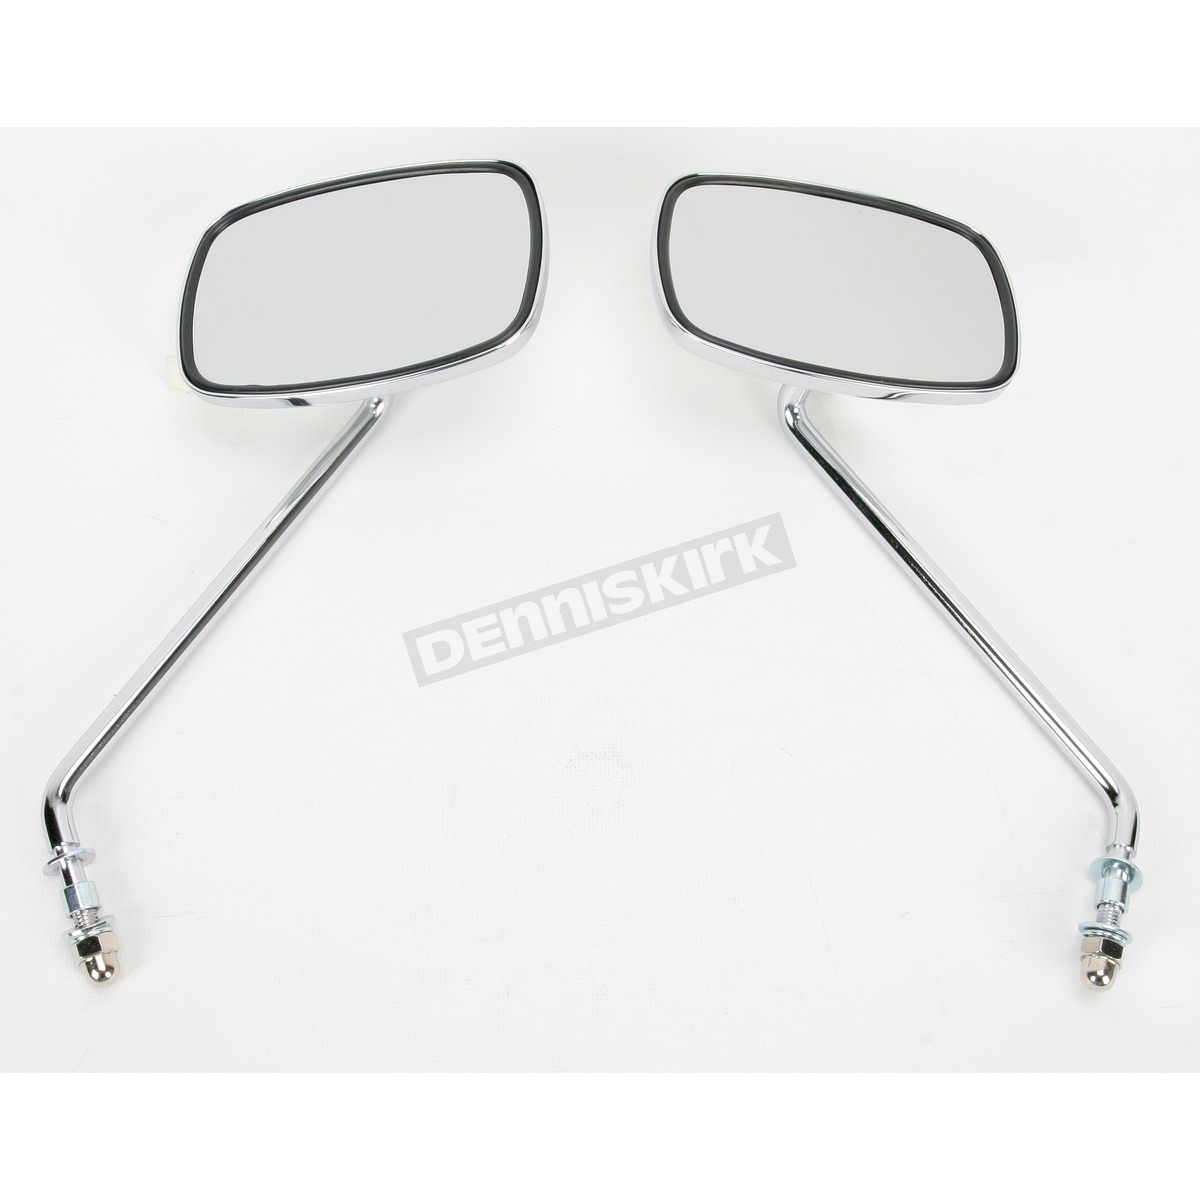 Black Ryde Plain Rectangular Metal Motorcycle Mirrors